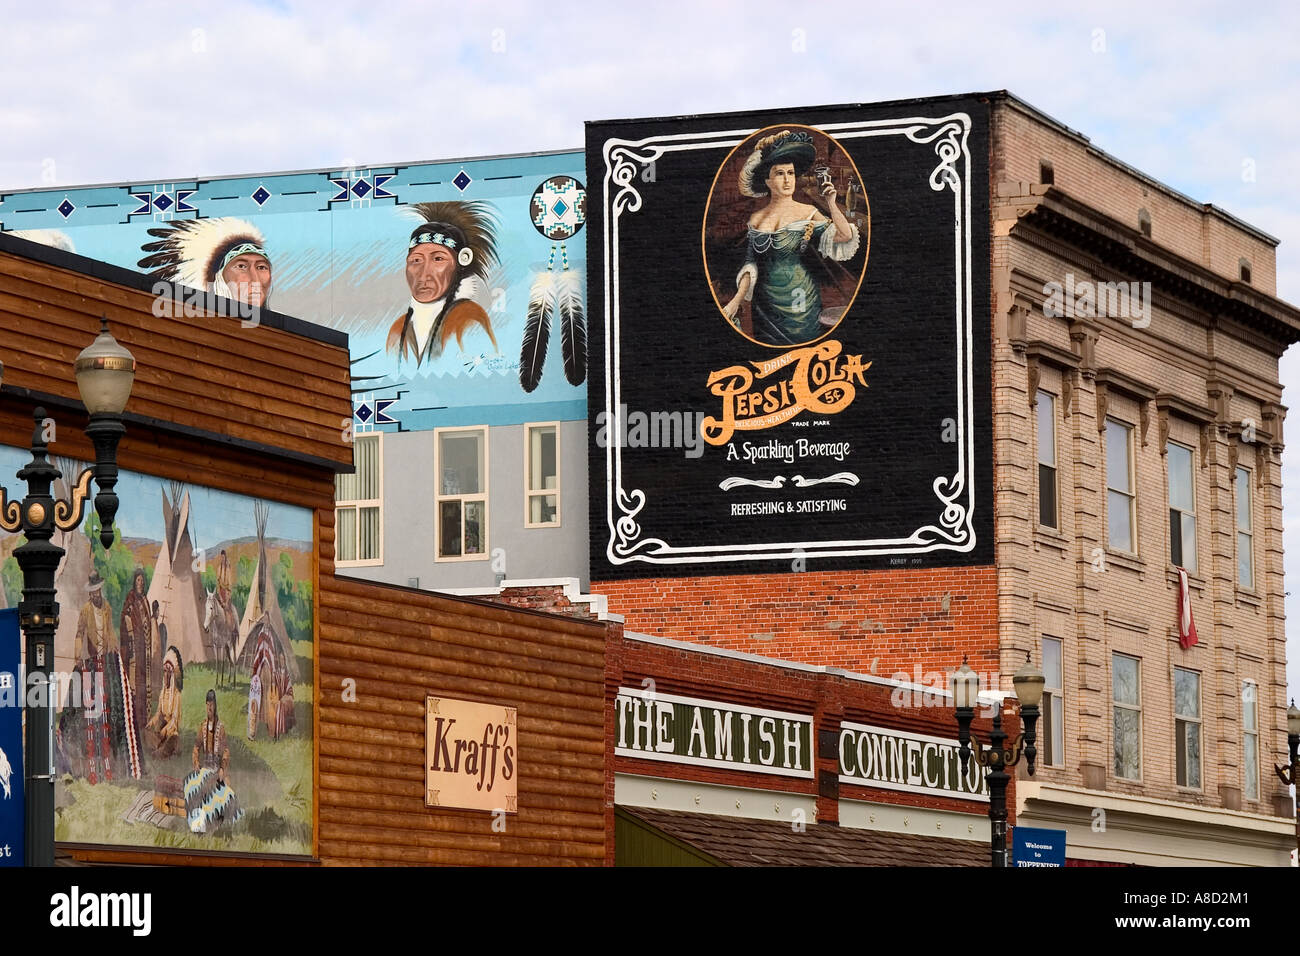 toppenish stock photos toppenish stock images alamy wall mural in toppenish washington a town in central washington known for is colorful historical murals